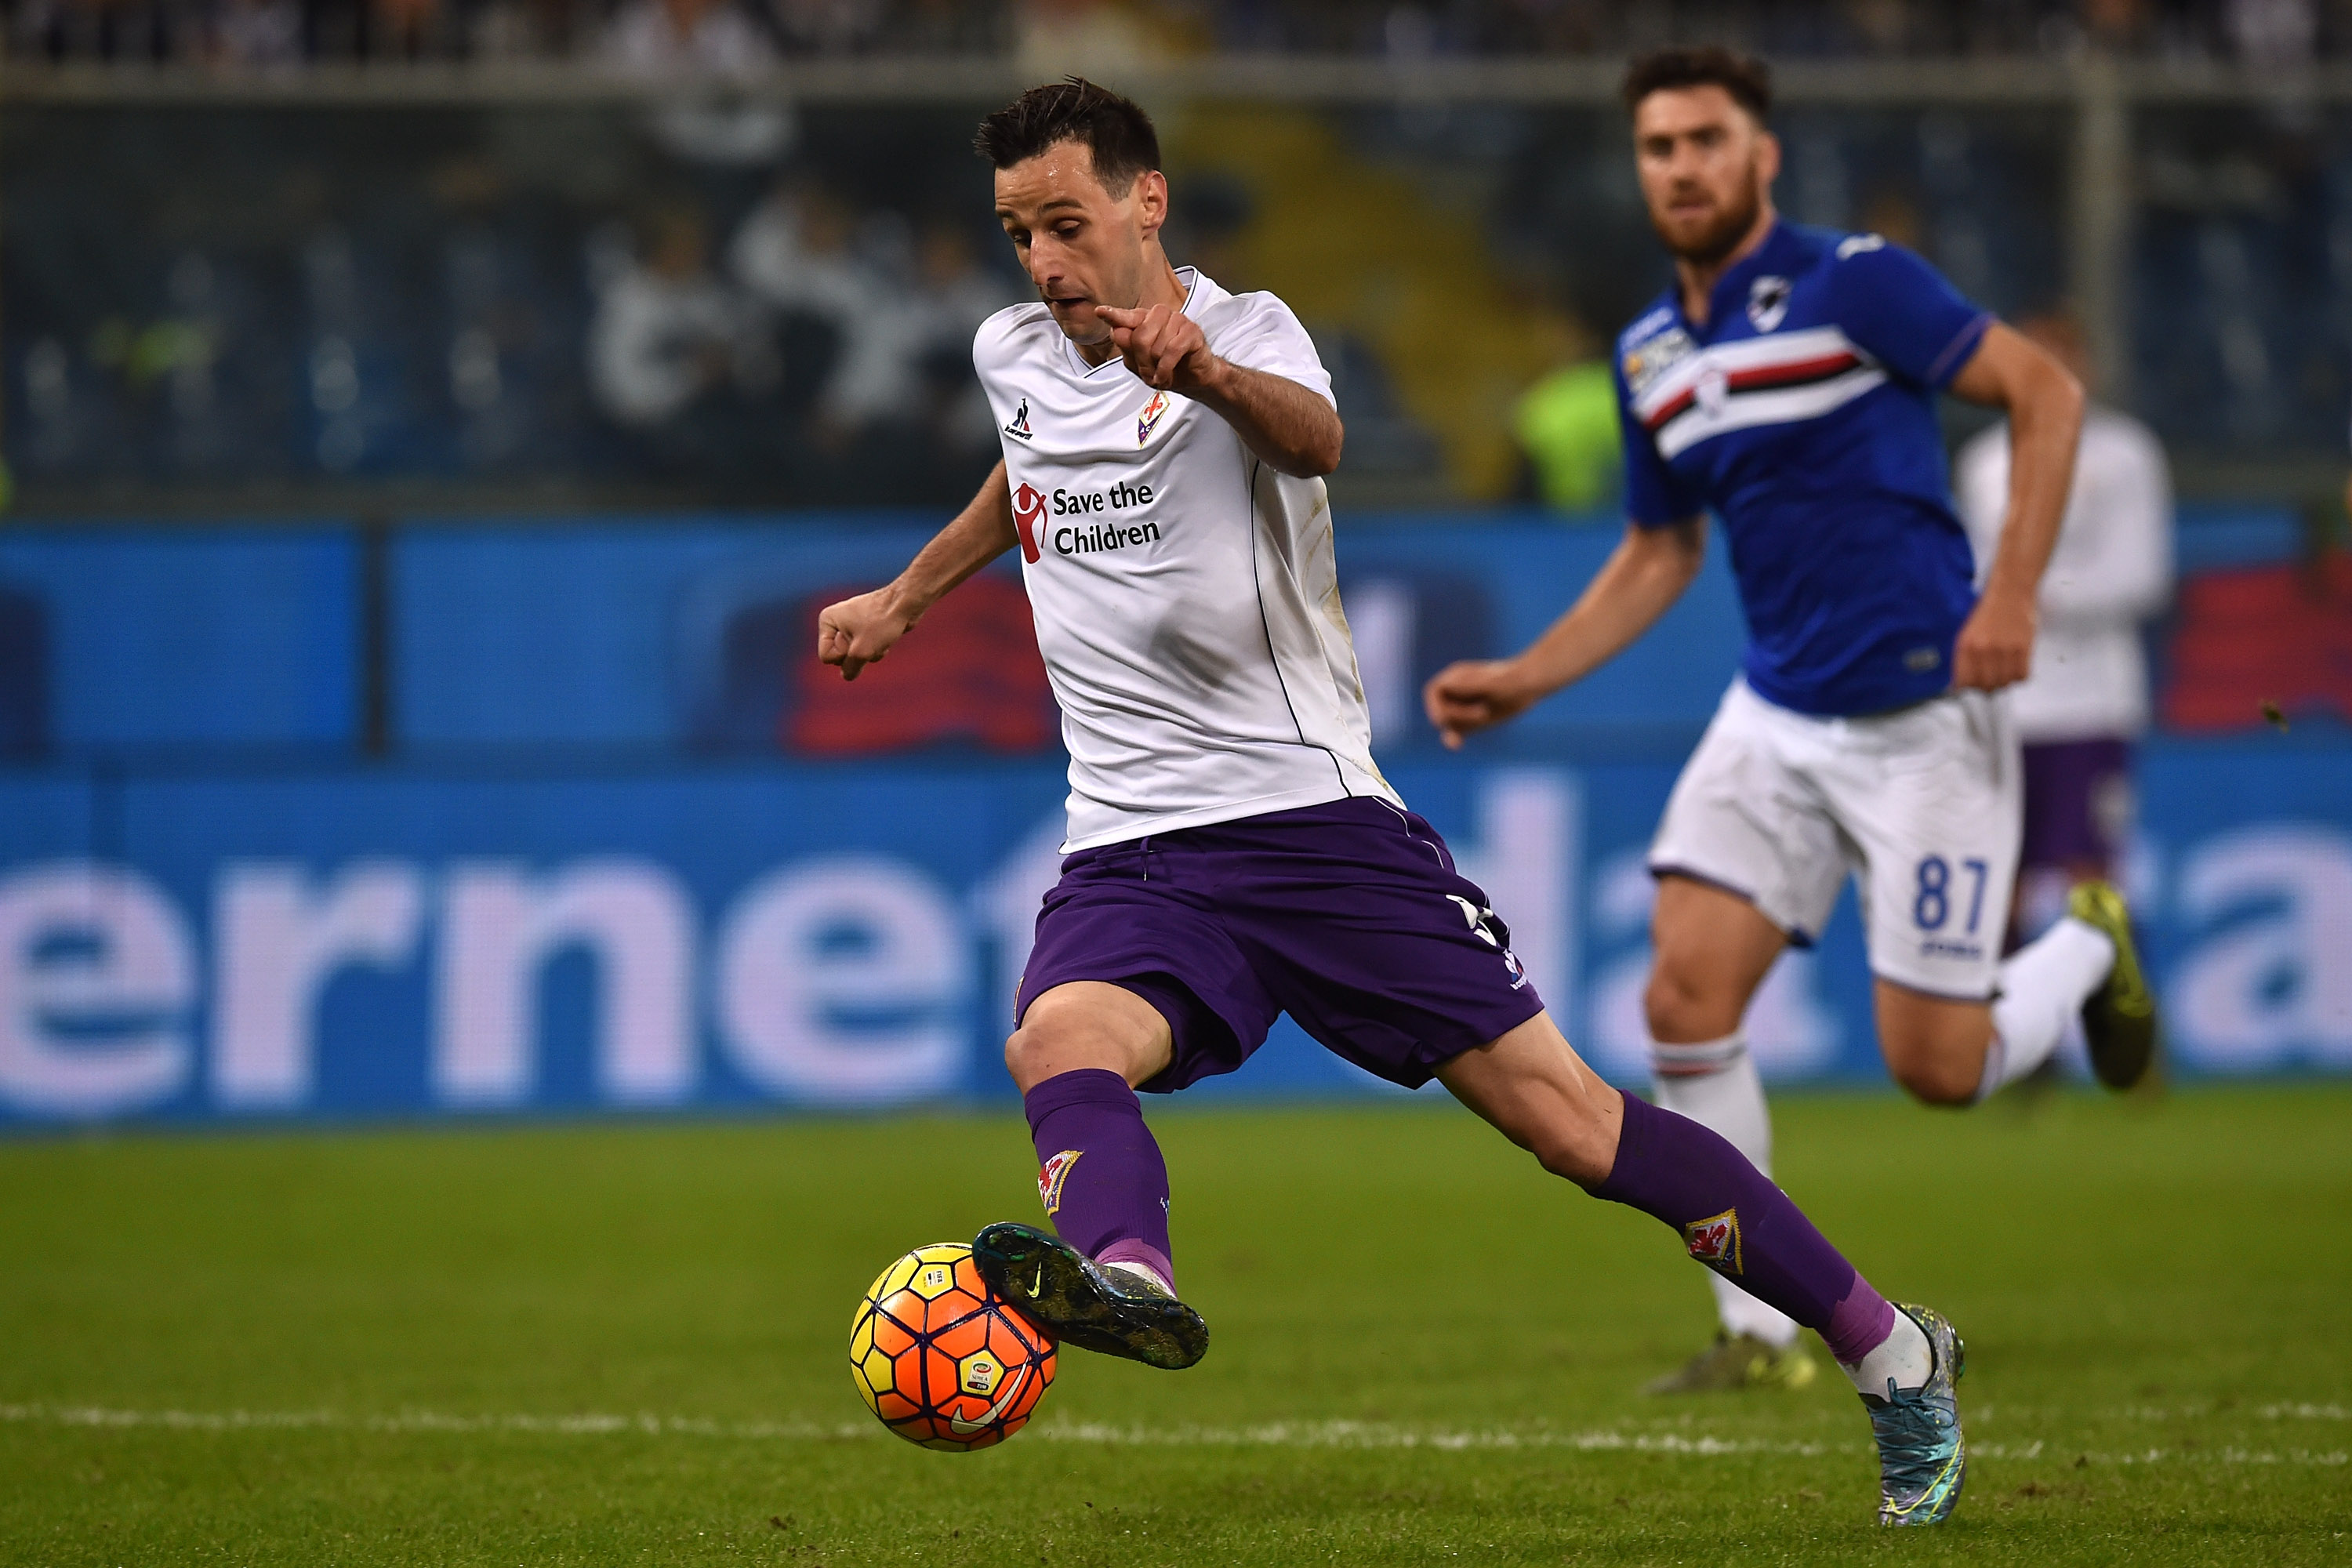 GENOA, ITALY - NOVEMBER 08: Nikola Kalinic of ACF Fiorentina in action during the Serie A match between UC Sampdoria and ACF Fiorentina at Stadio Luigi Ferraris on November 8, 2015 in Genoa, Italy. (Photo by Valerio Pennicino/Getty Images)